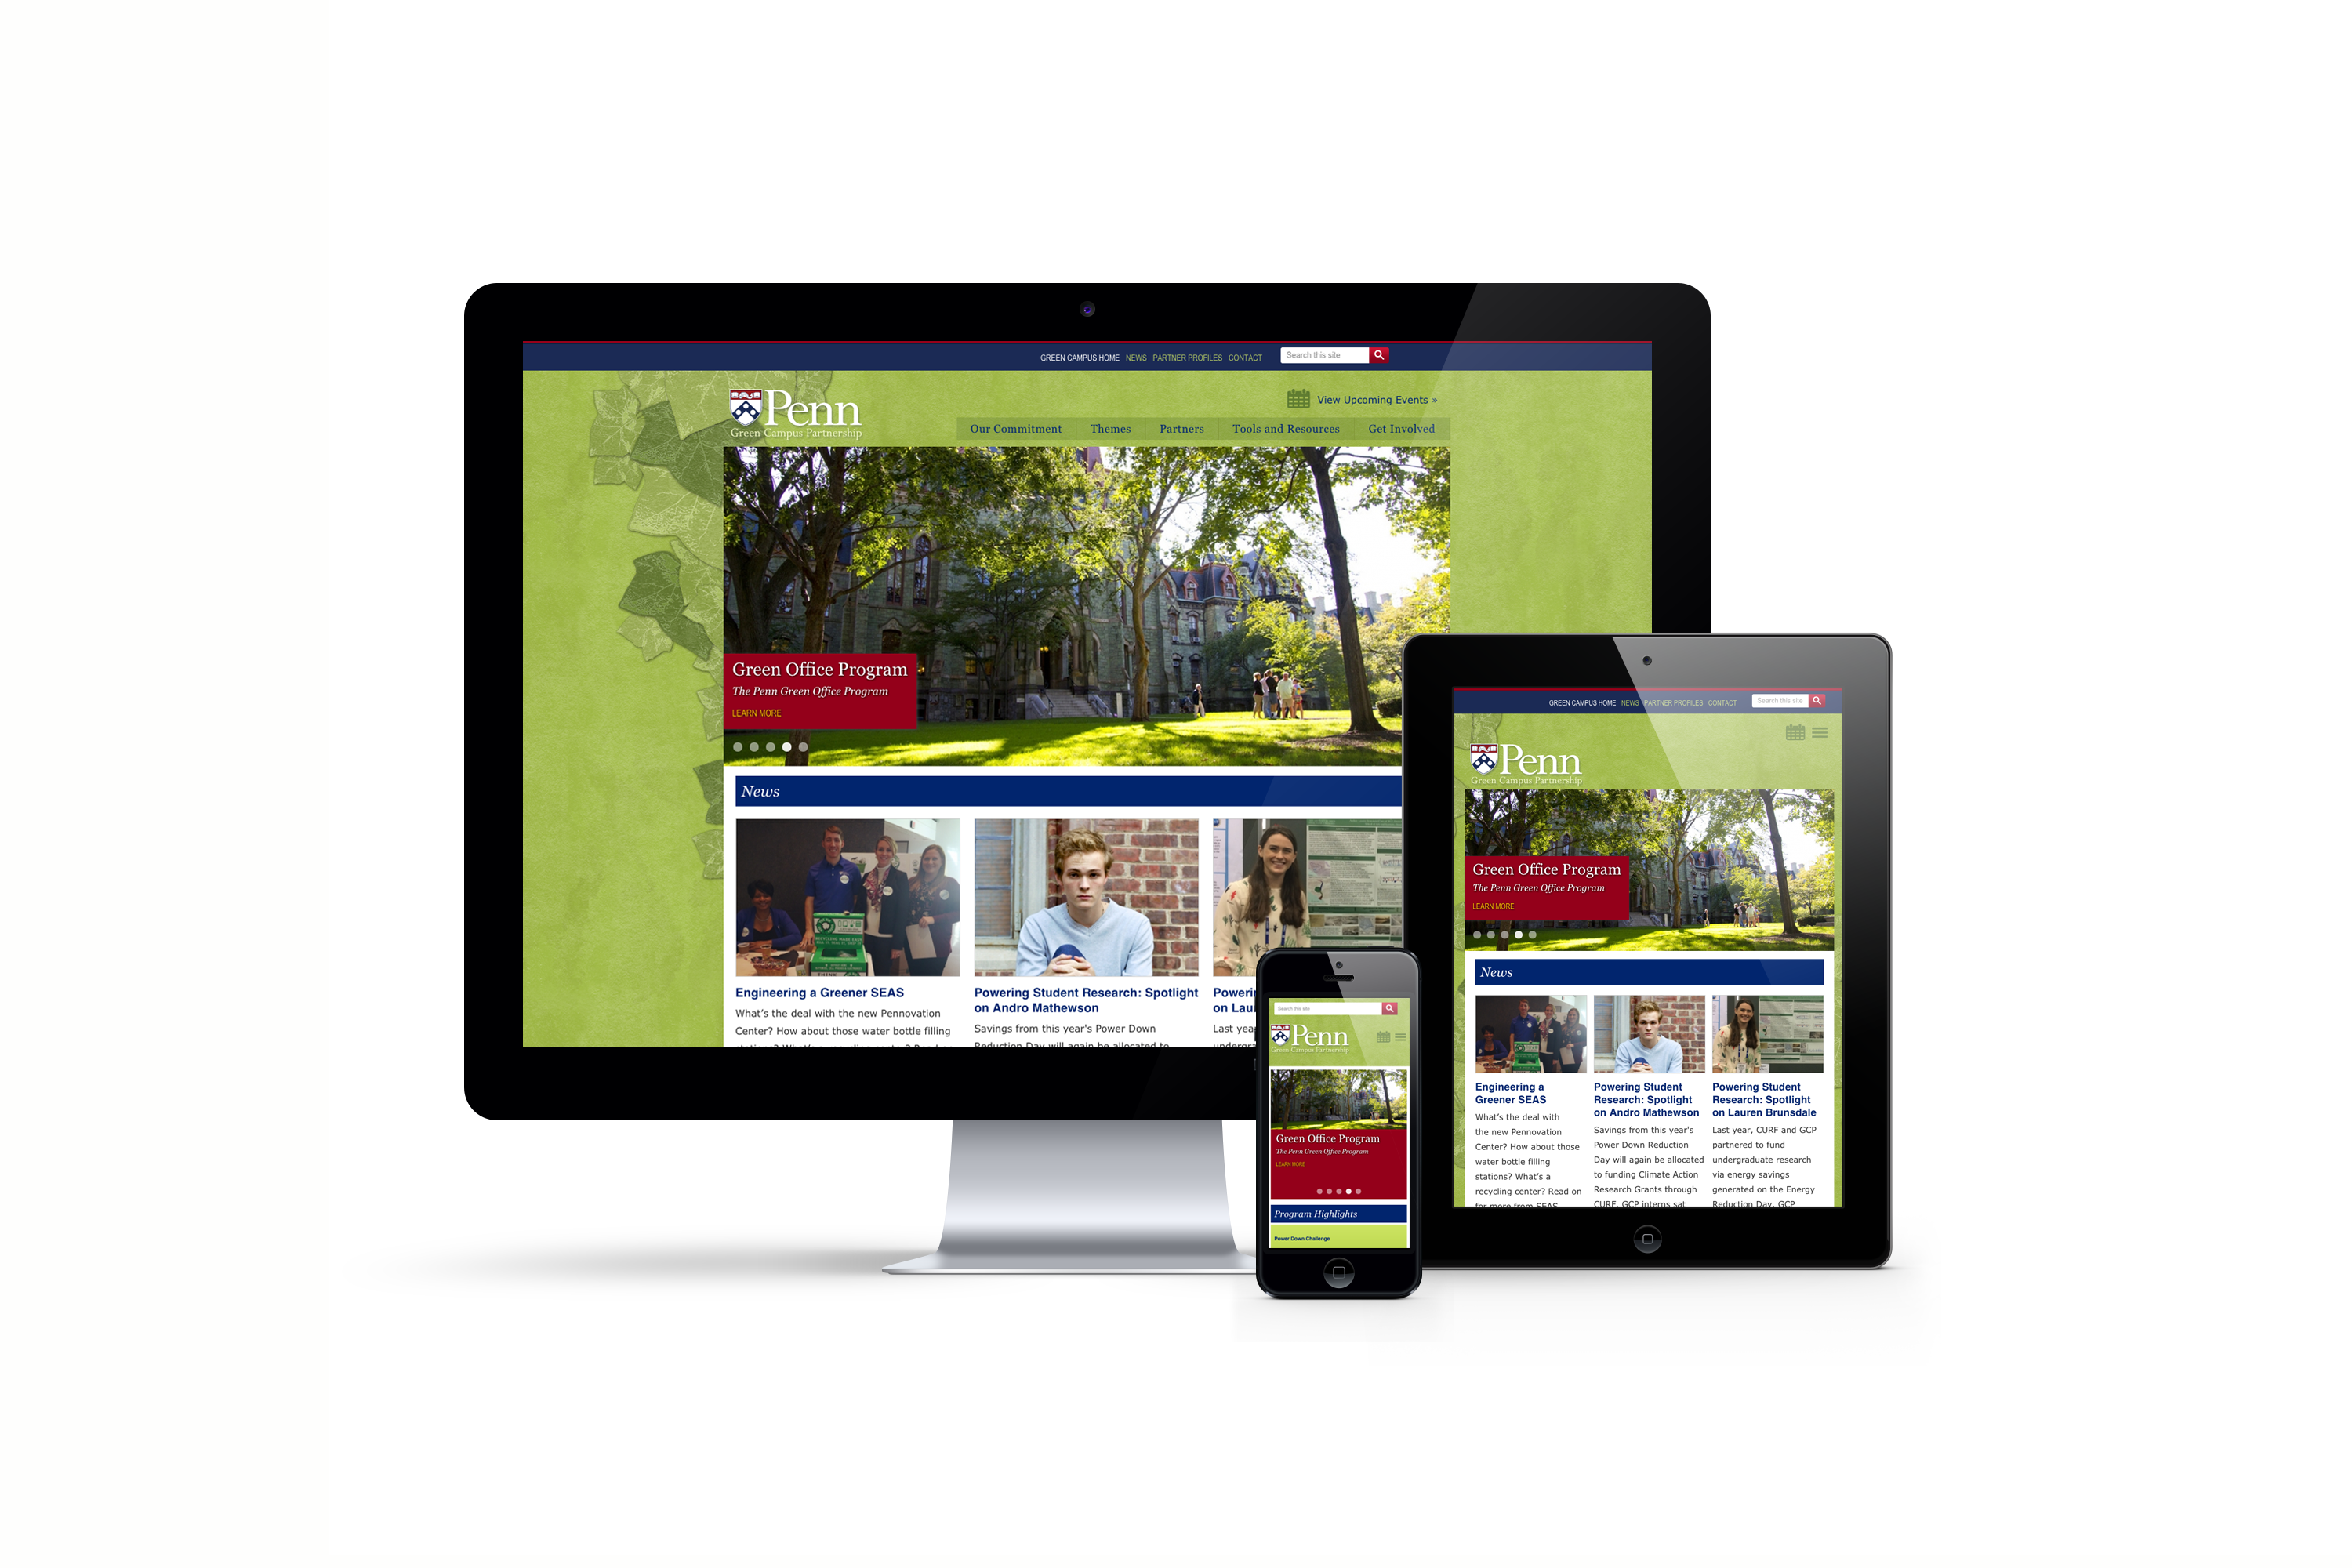 Penn Green Campus Partnership responsive design